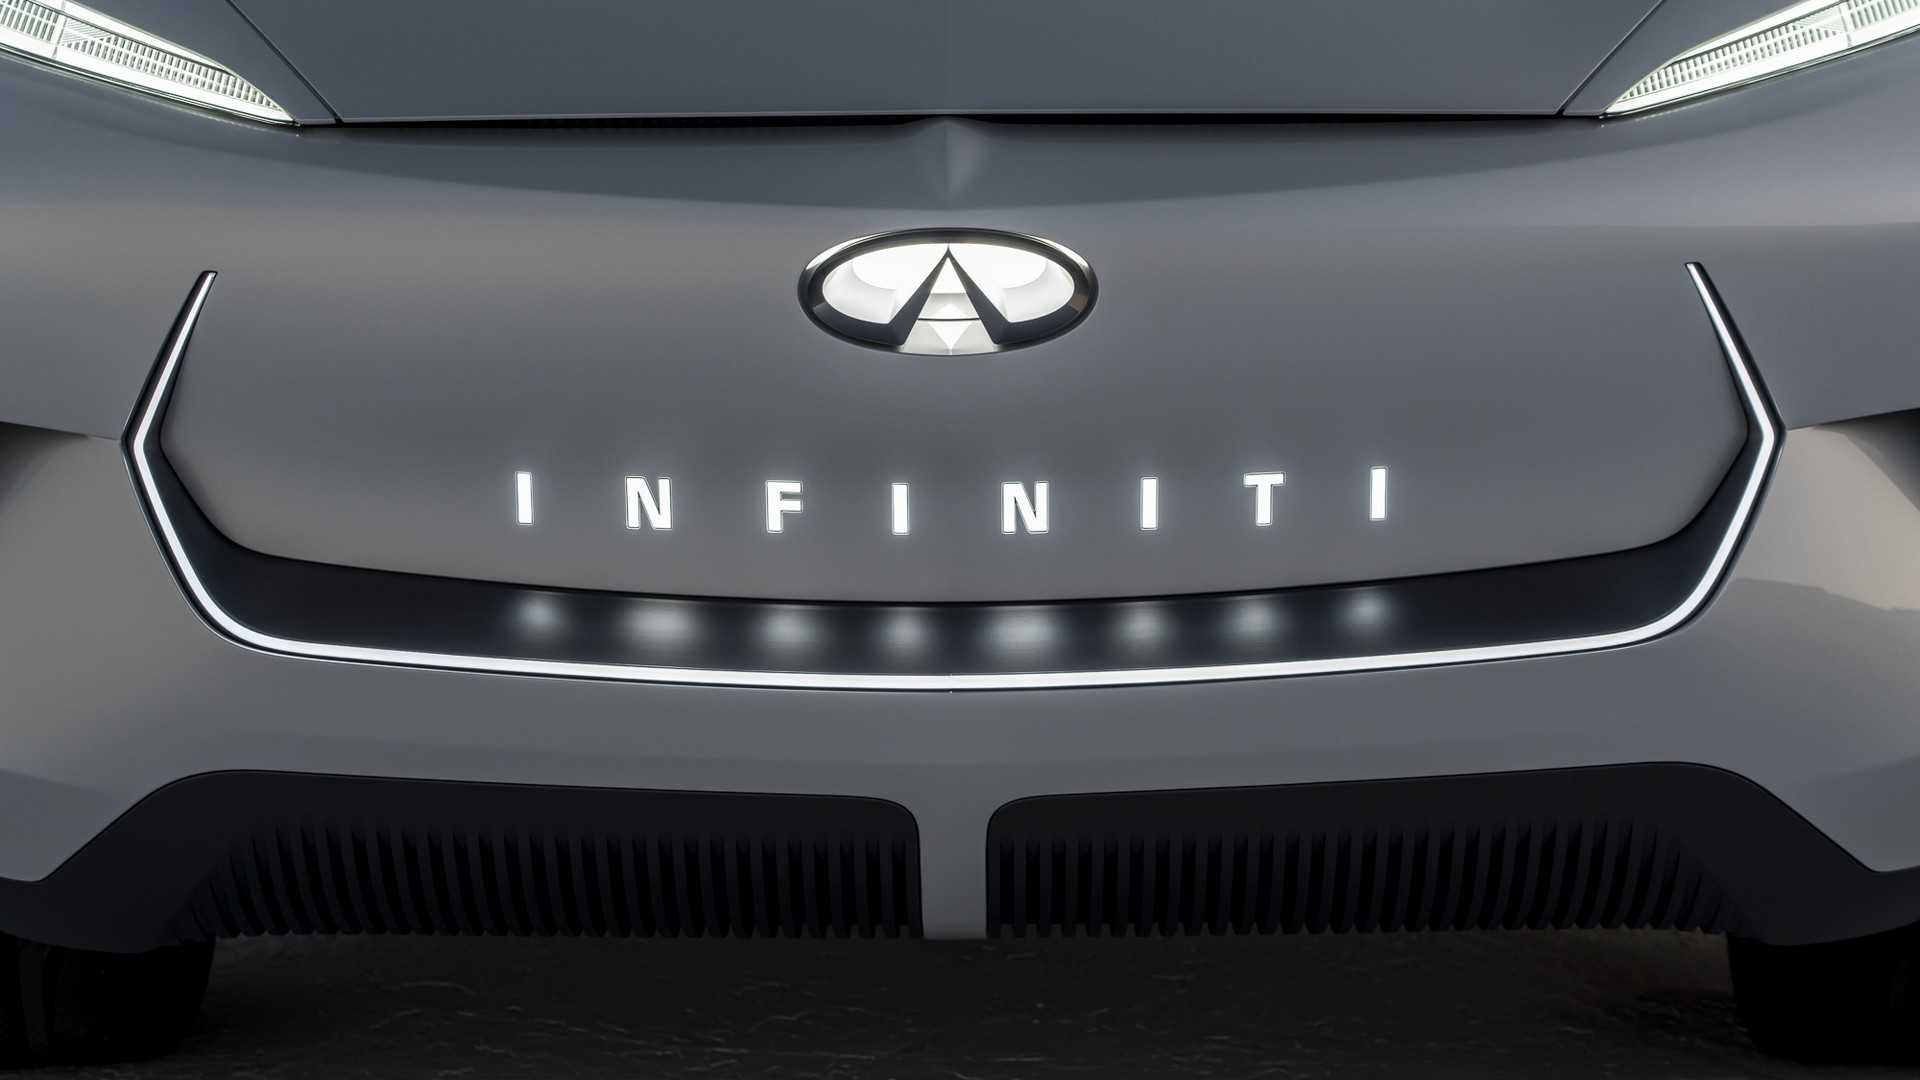 42 All New Infiniti Europe 2020 Pricing for Infiniti Europe 2020